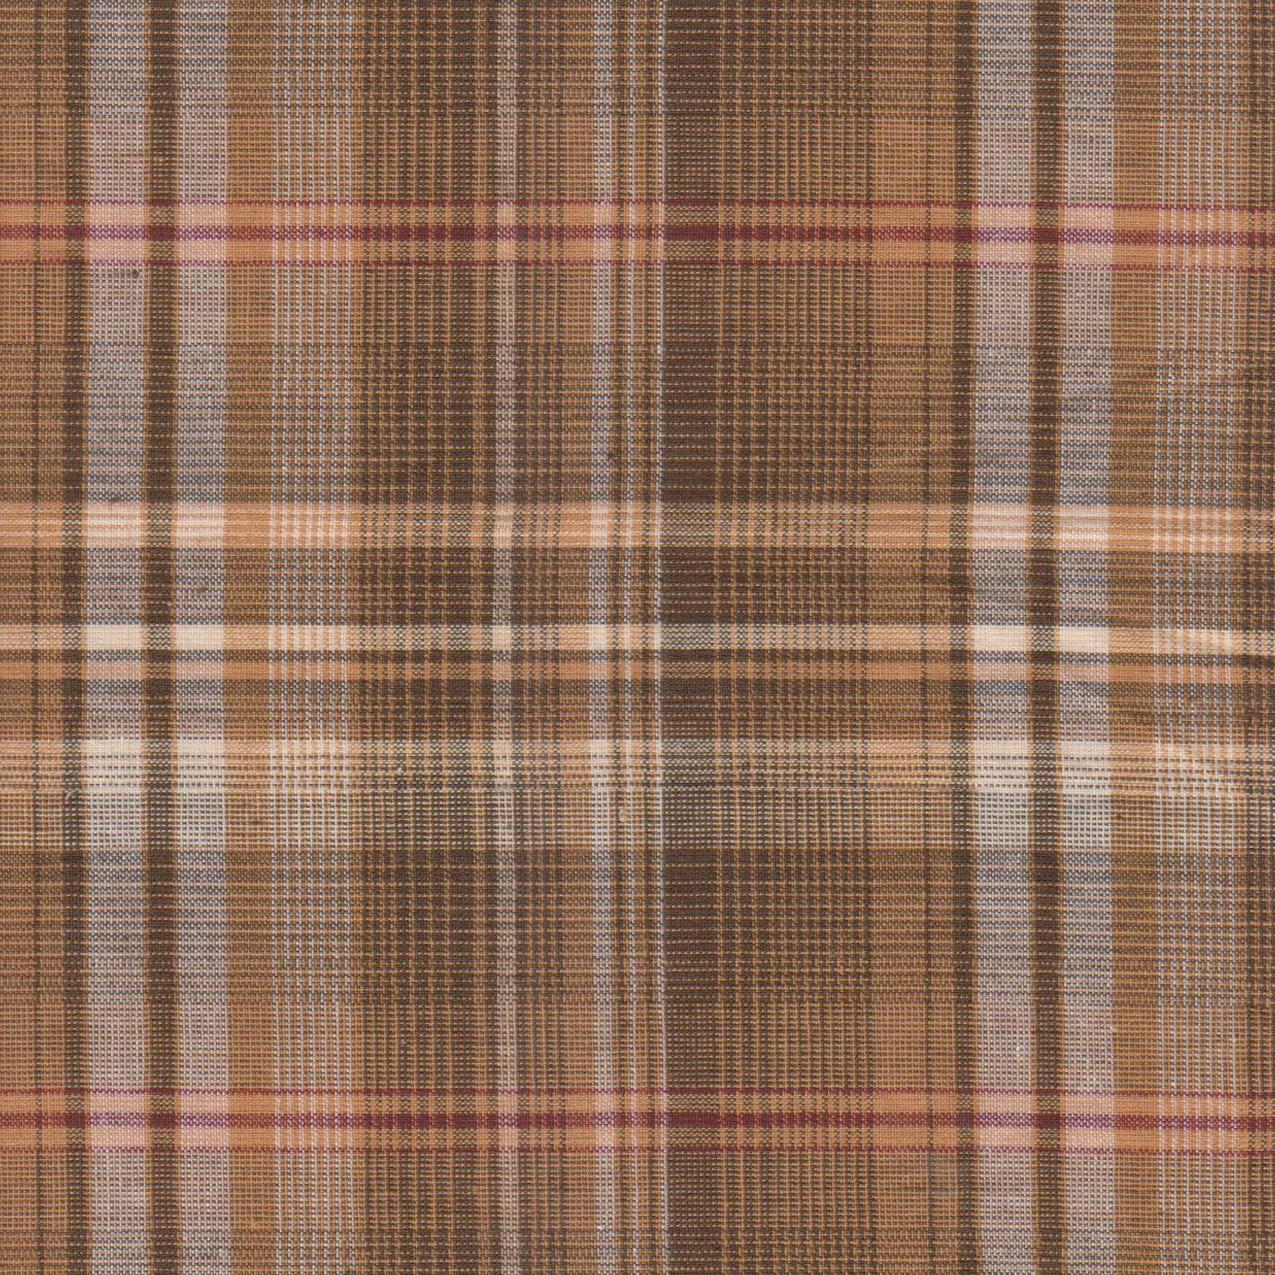 "Dark and Light Brown Plaid Fabric Swatch 4"" x 4"""